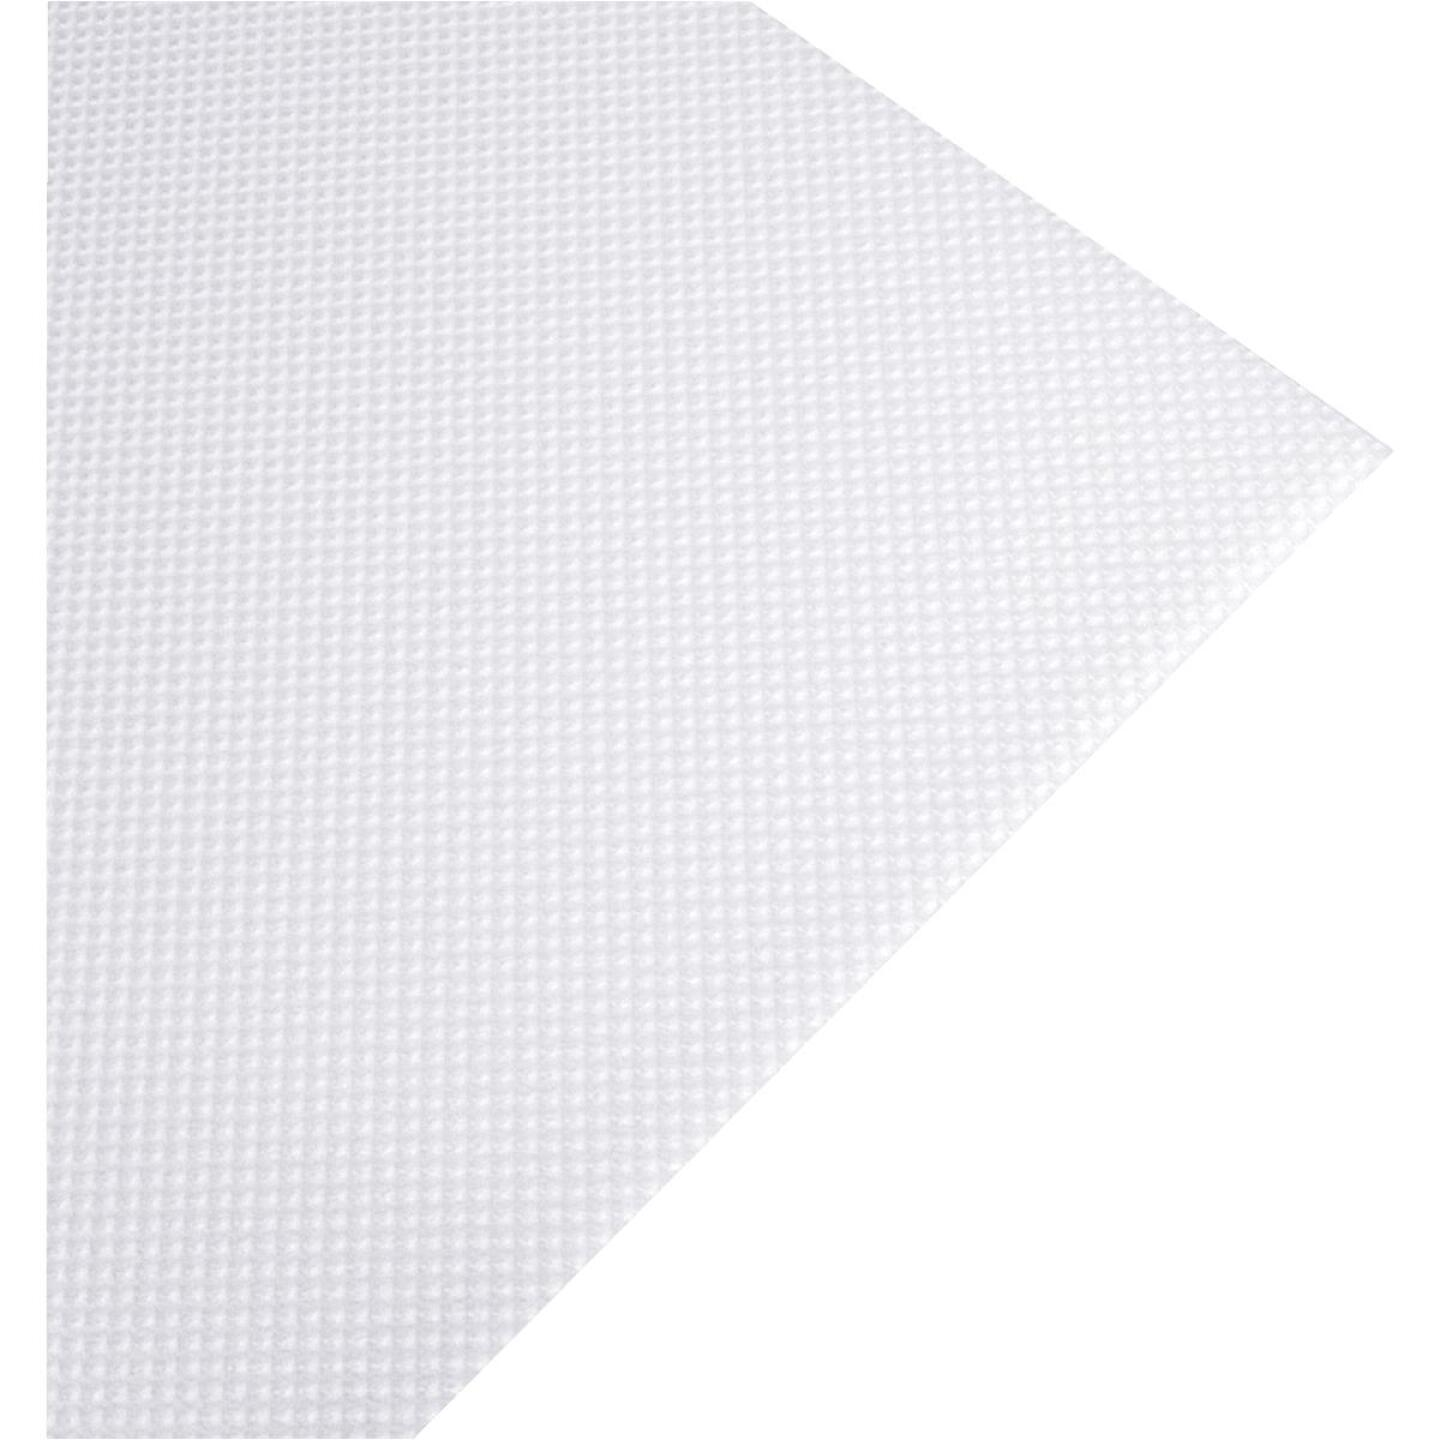 Plaskolite 2 Ft. x 4 Ft. Micro Prism Frosted White Acrylic Light Panel Image 1